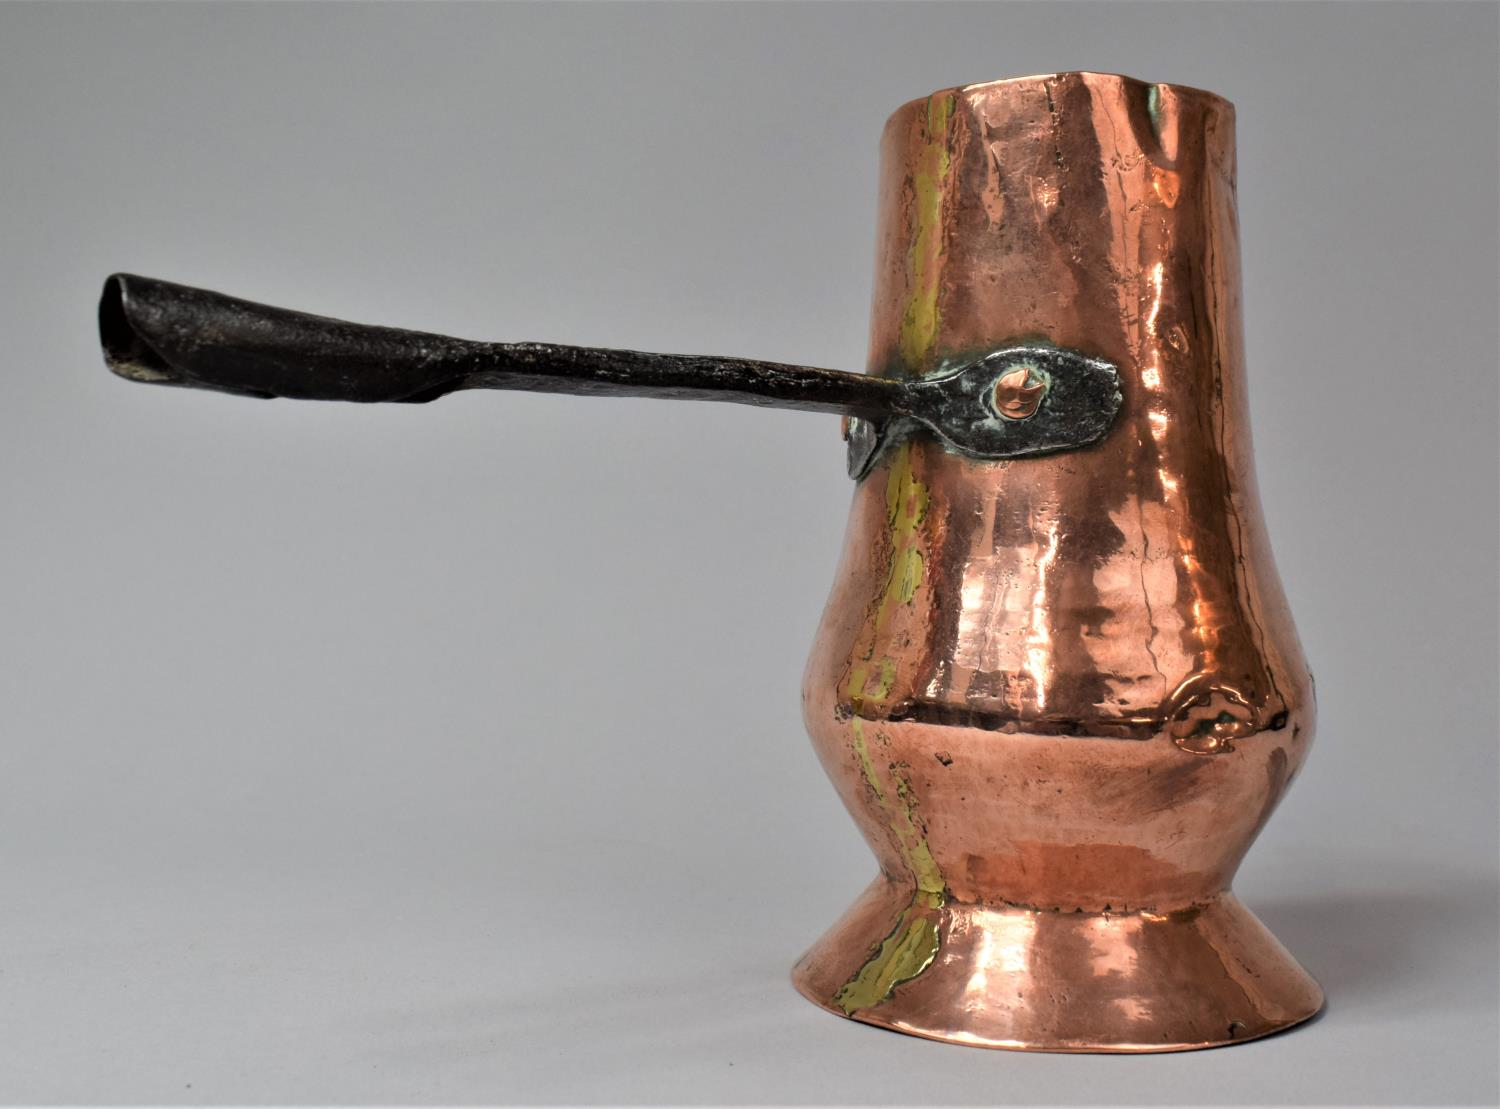 An Early Iron handled Copper Side Pouring Jug, 18cm high - Image 2 of 6